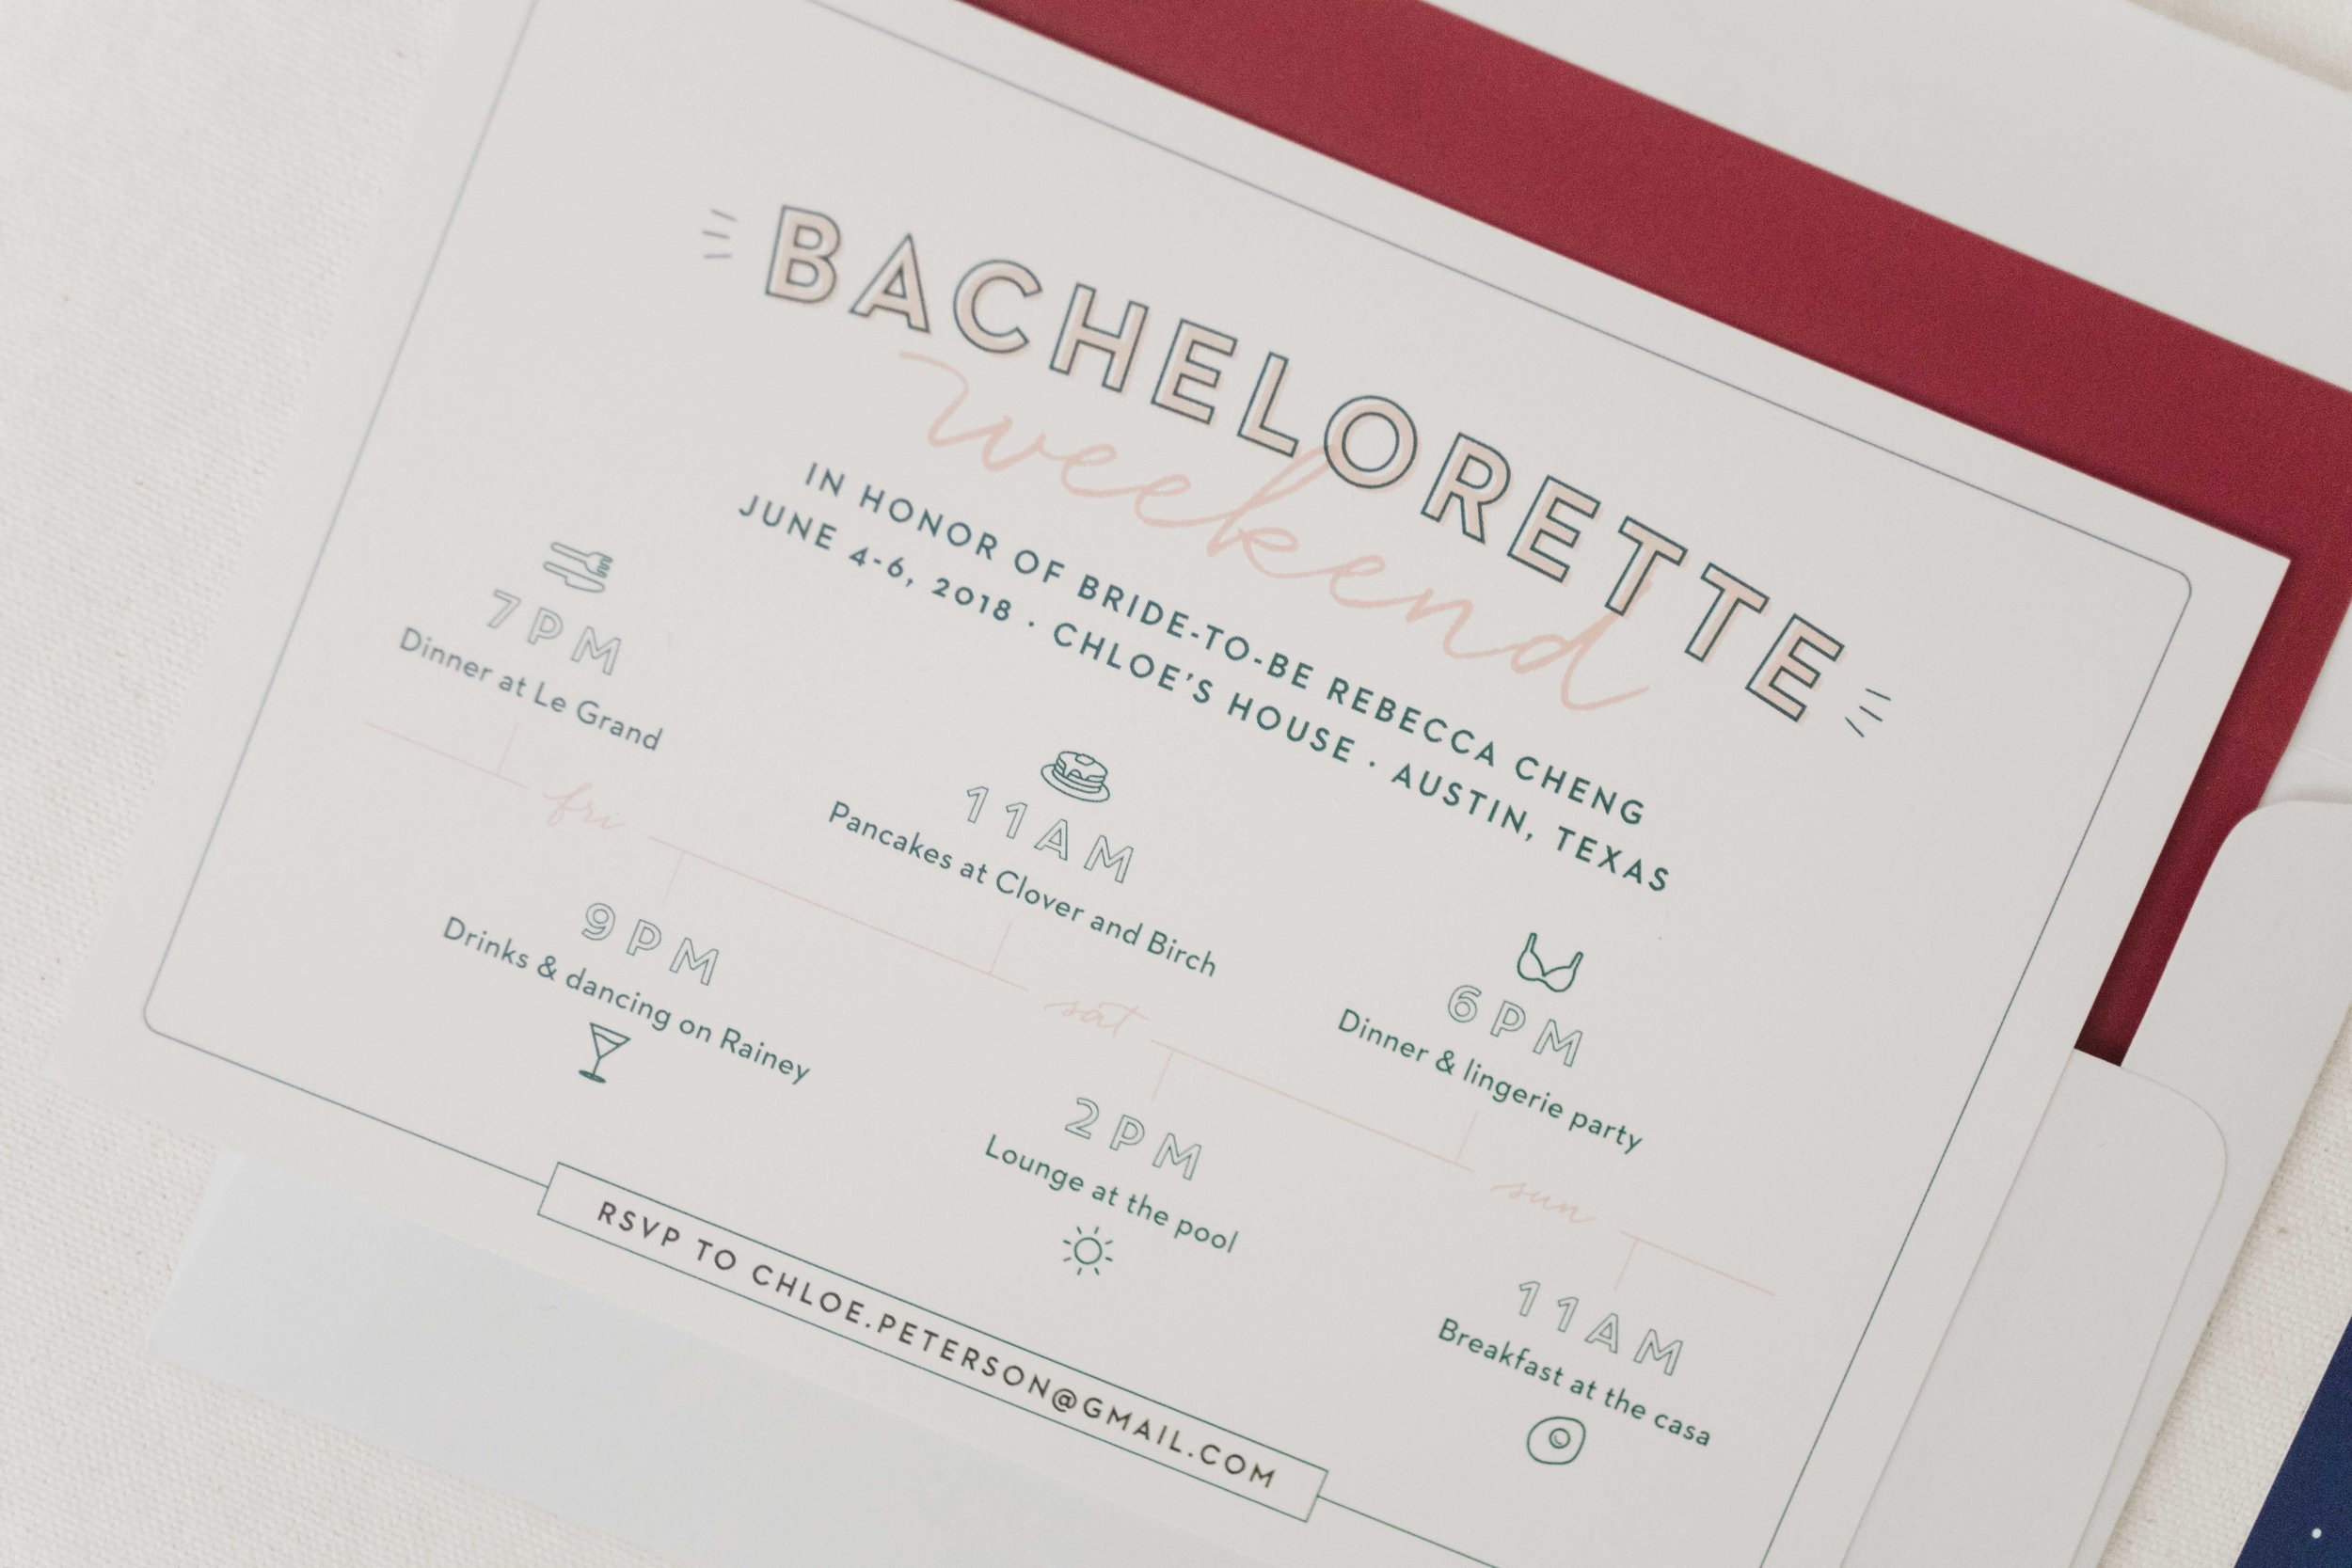 Basic-Invite-Bachelorette-Invitations-9.jpg